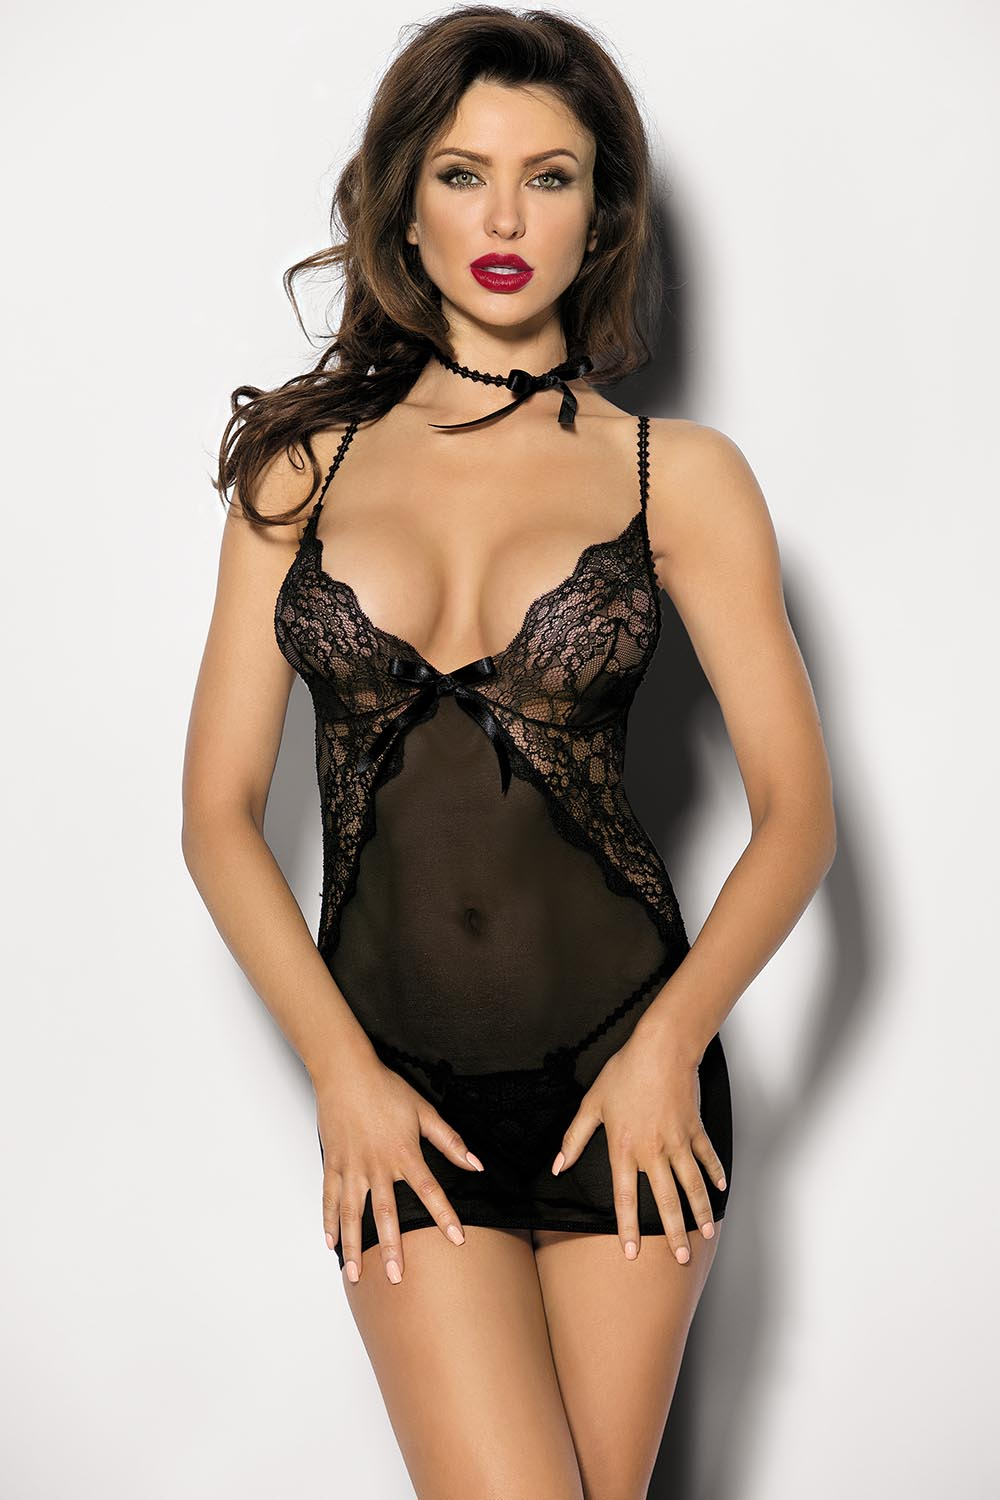 Omorfi Sexy Black Shirt And Panty Set - EVOLESCENT